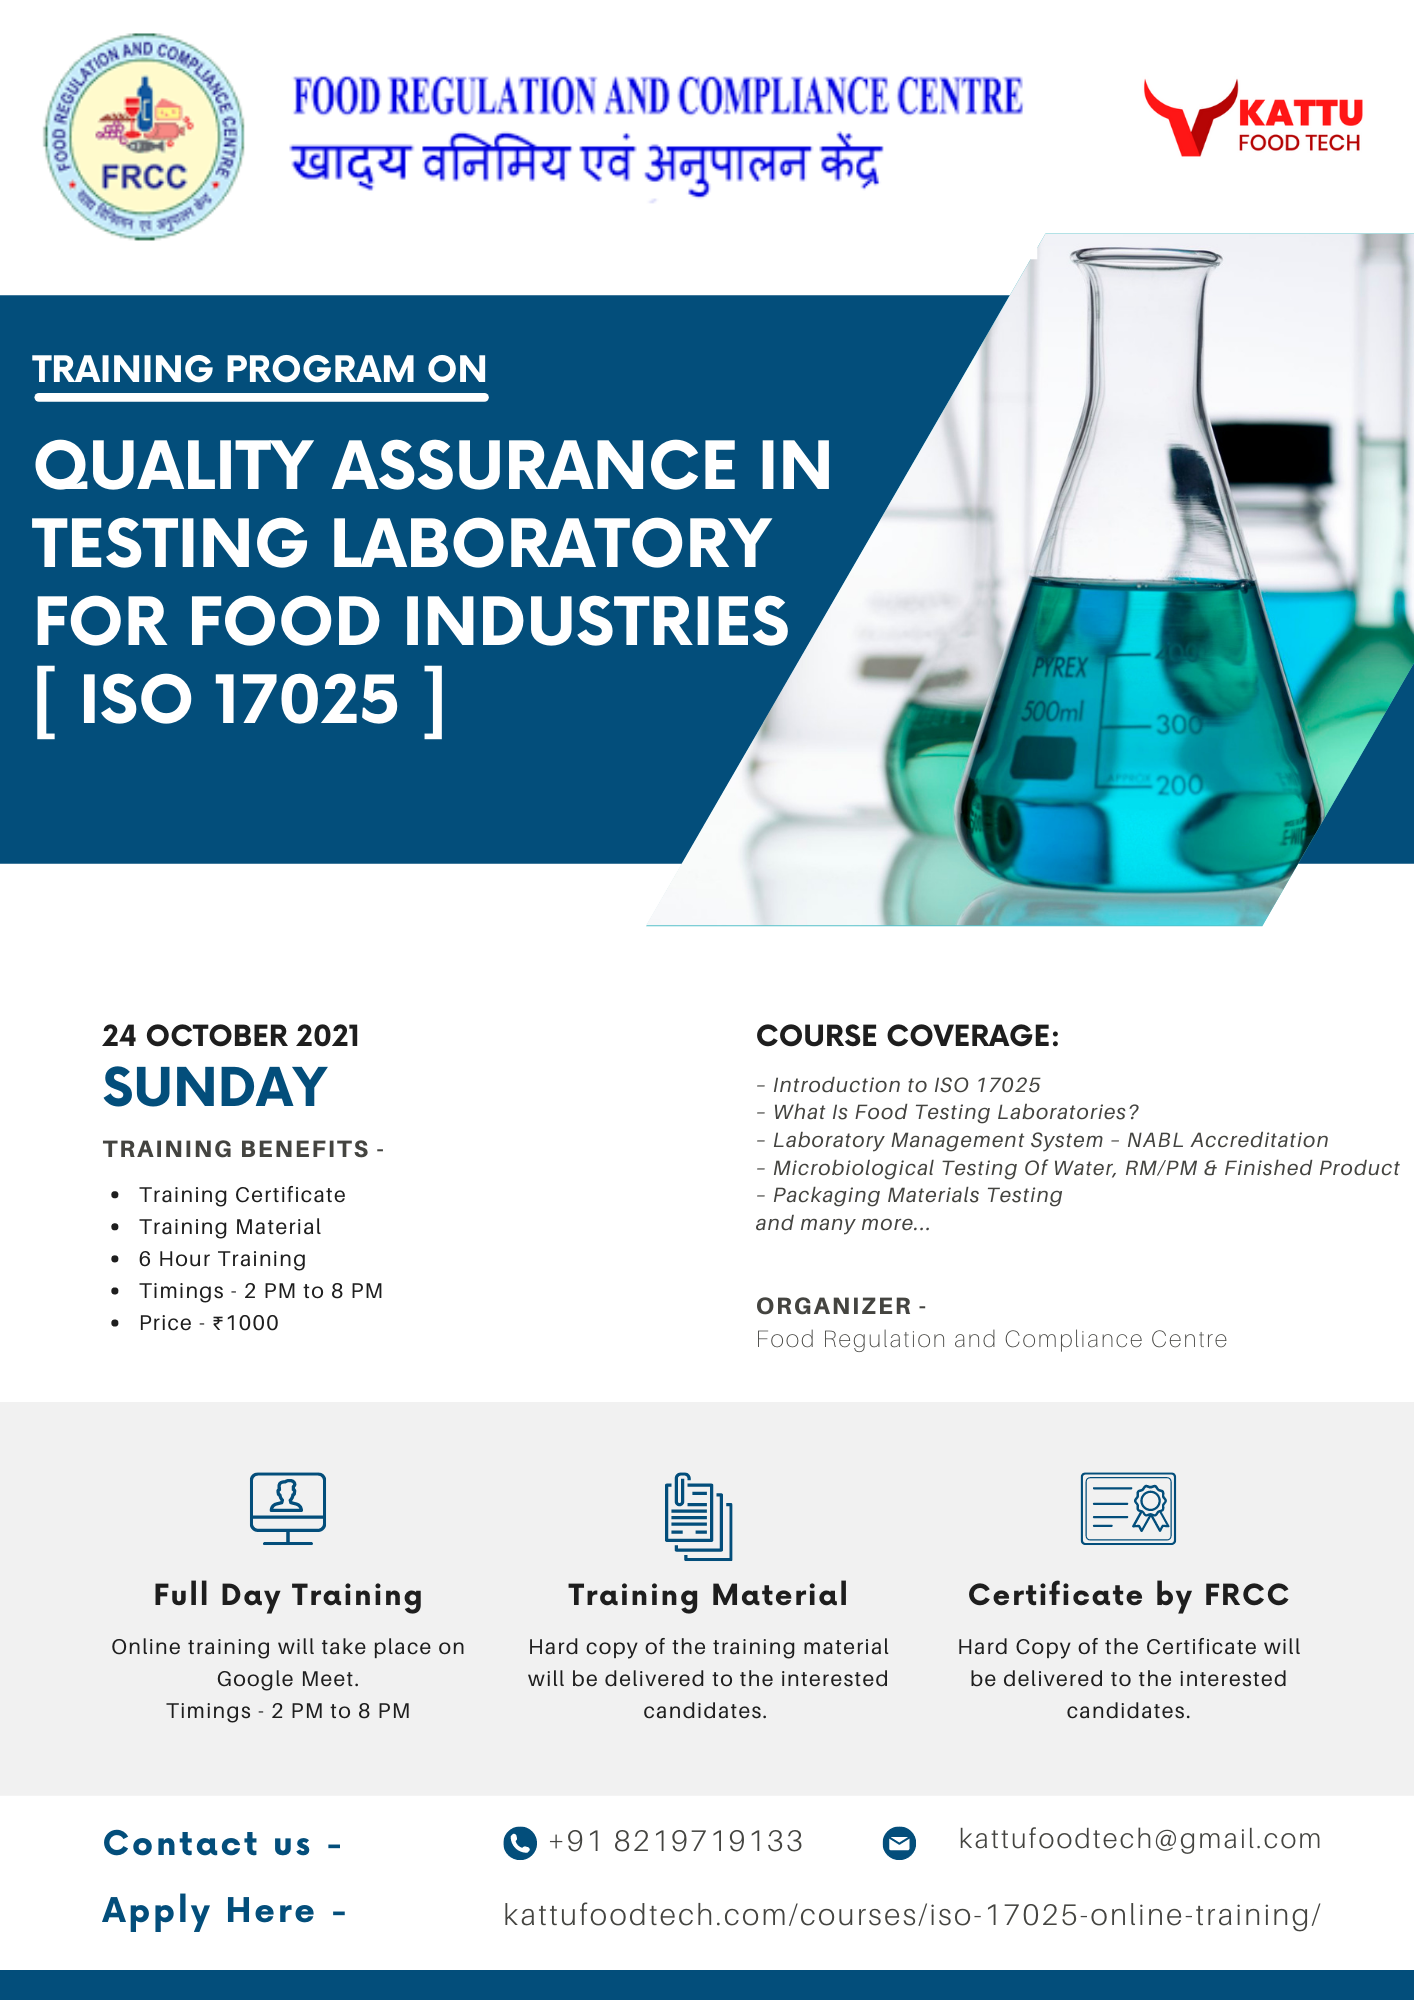 QUALITY ASSURANCE IN TESTING LABORATORY AS PER ISO 17025